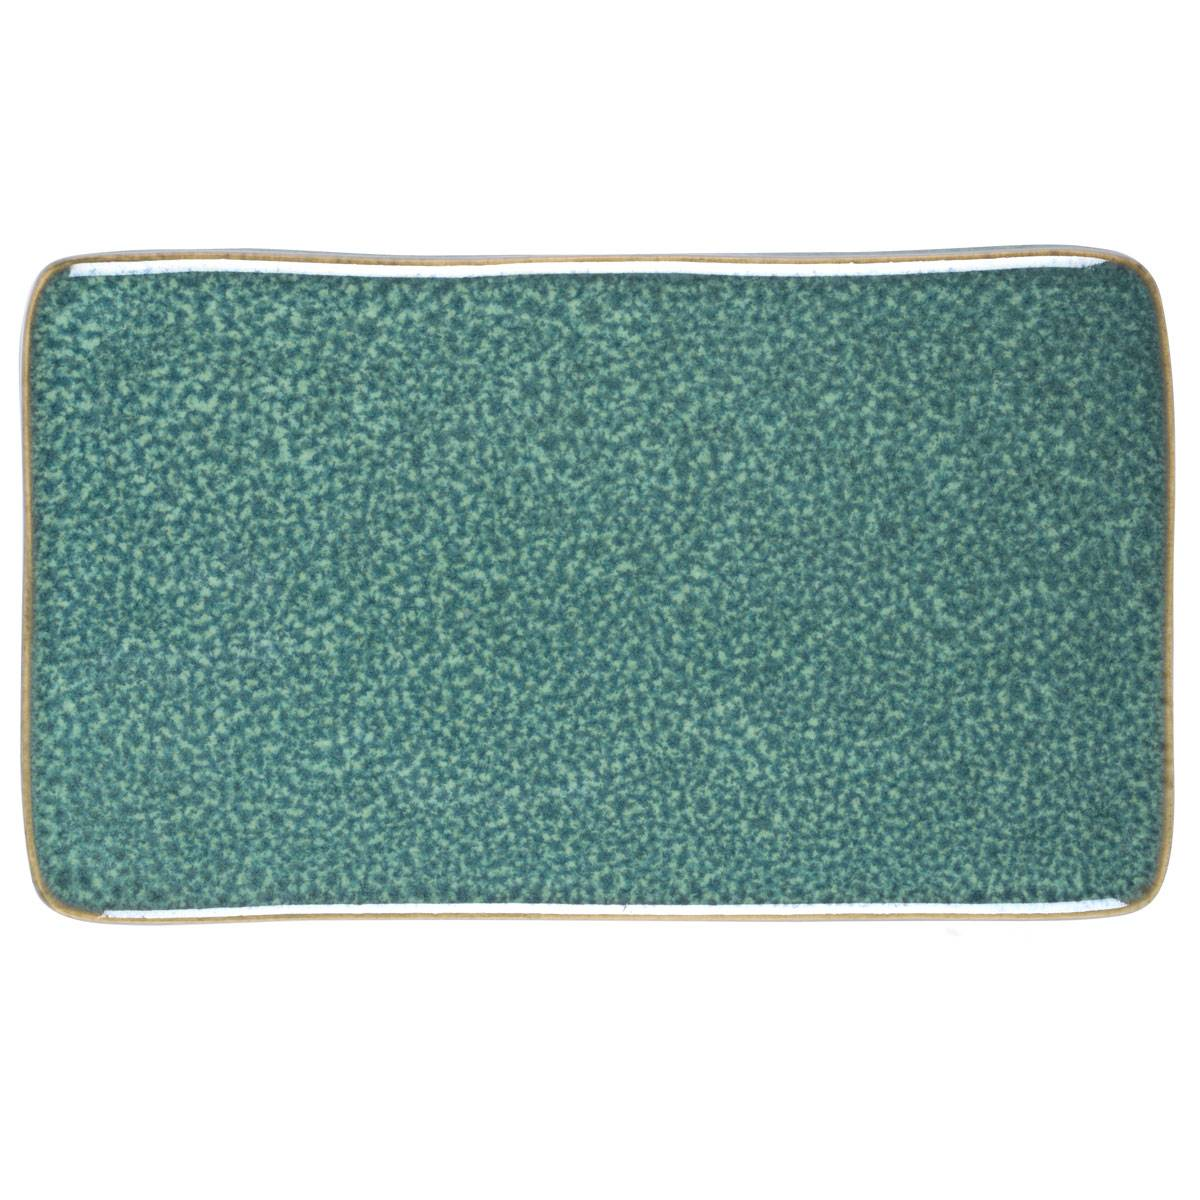 Bitz Bitz Serving Plate 22x12 cm, Green